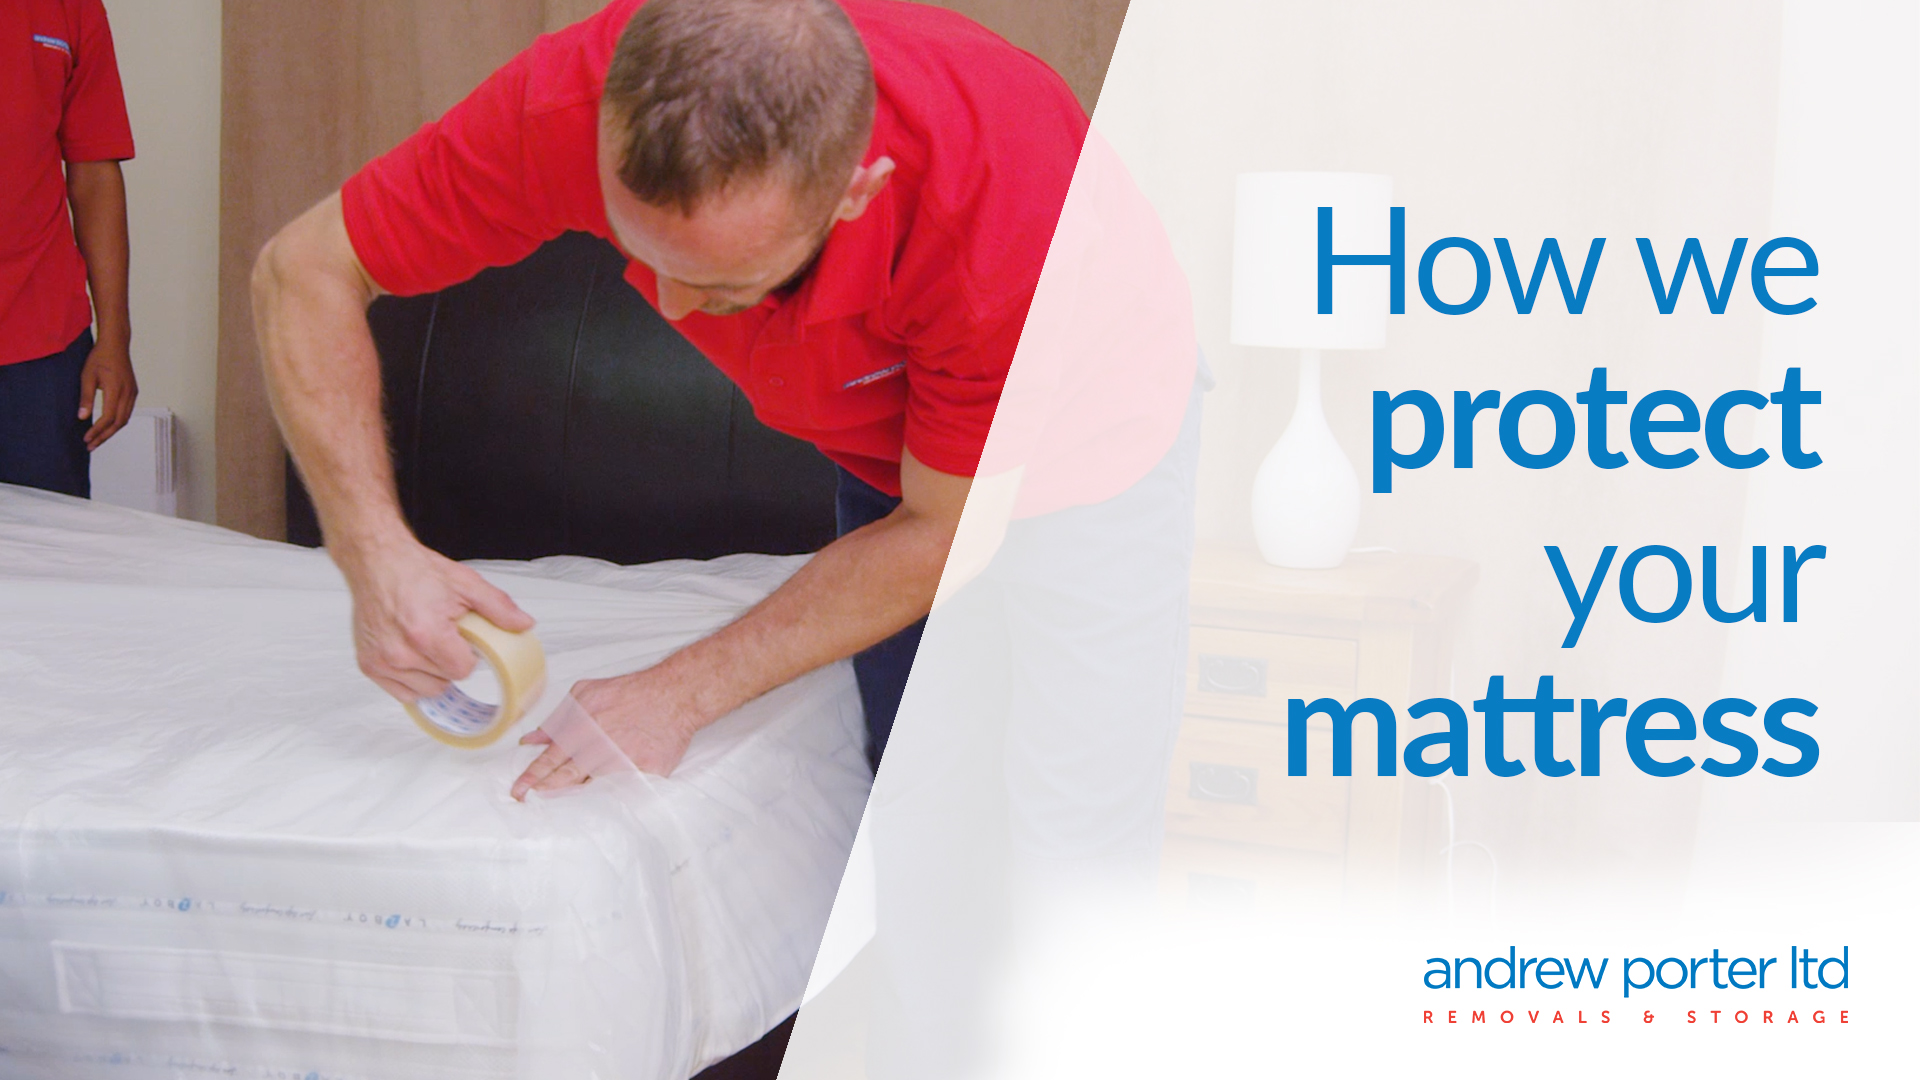 How we protect your mattress